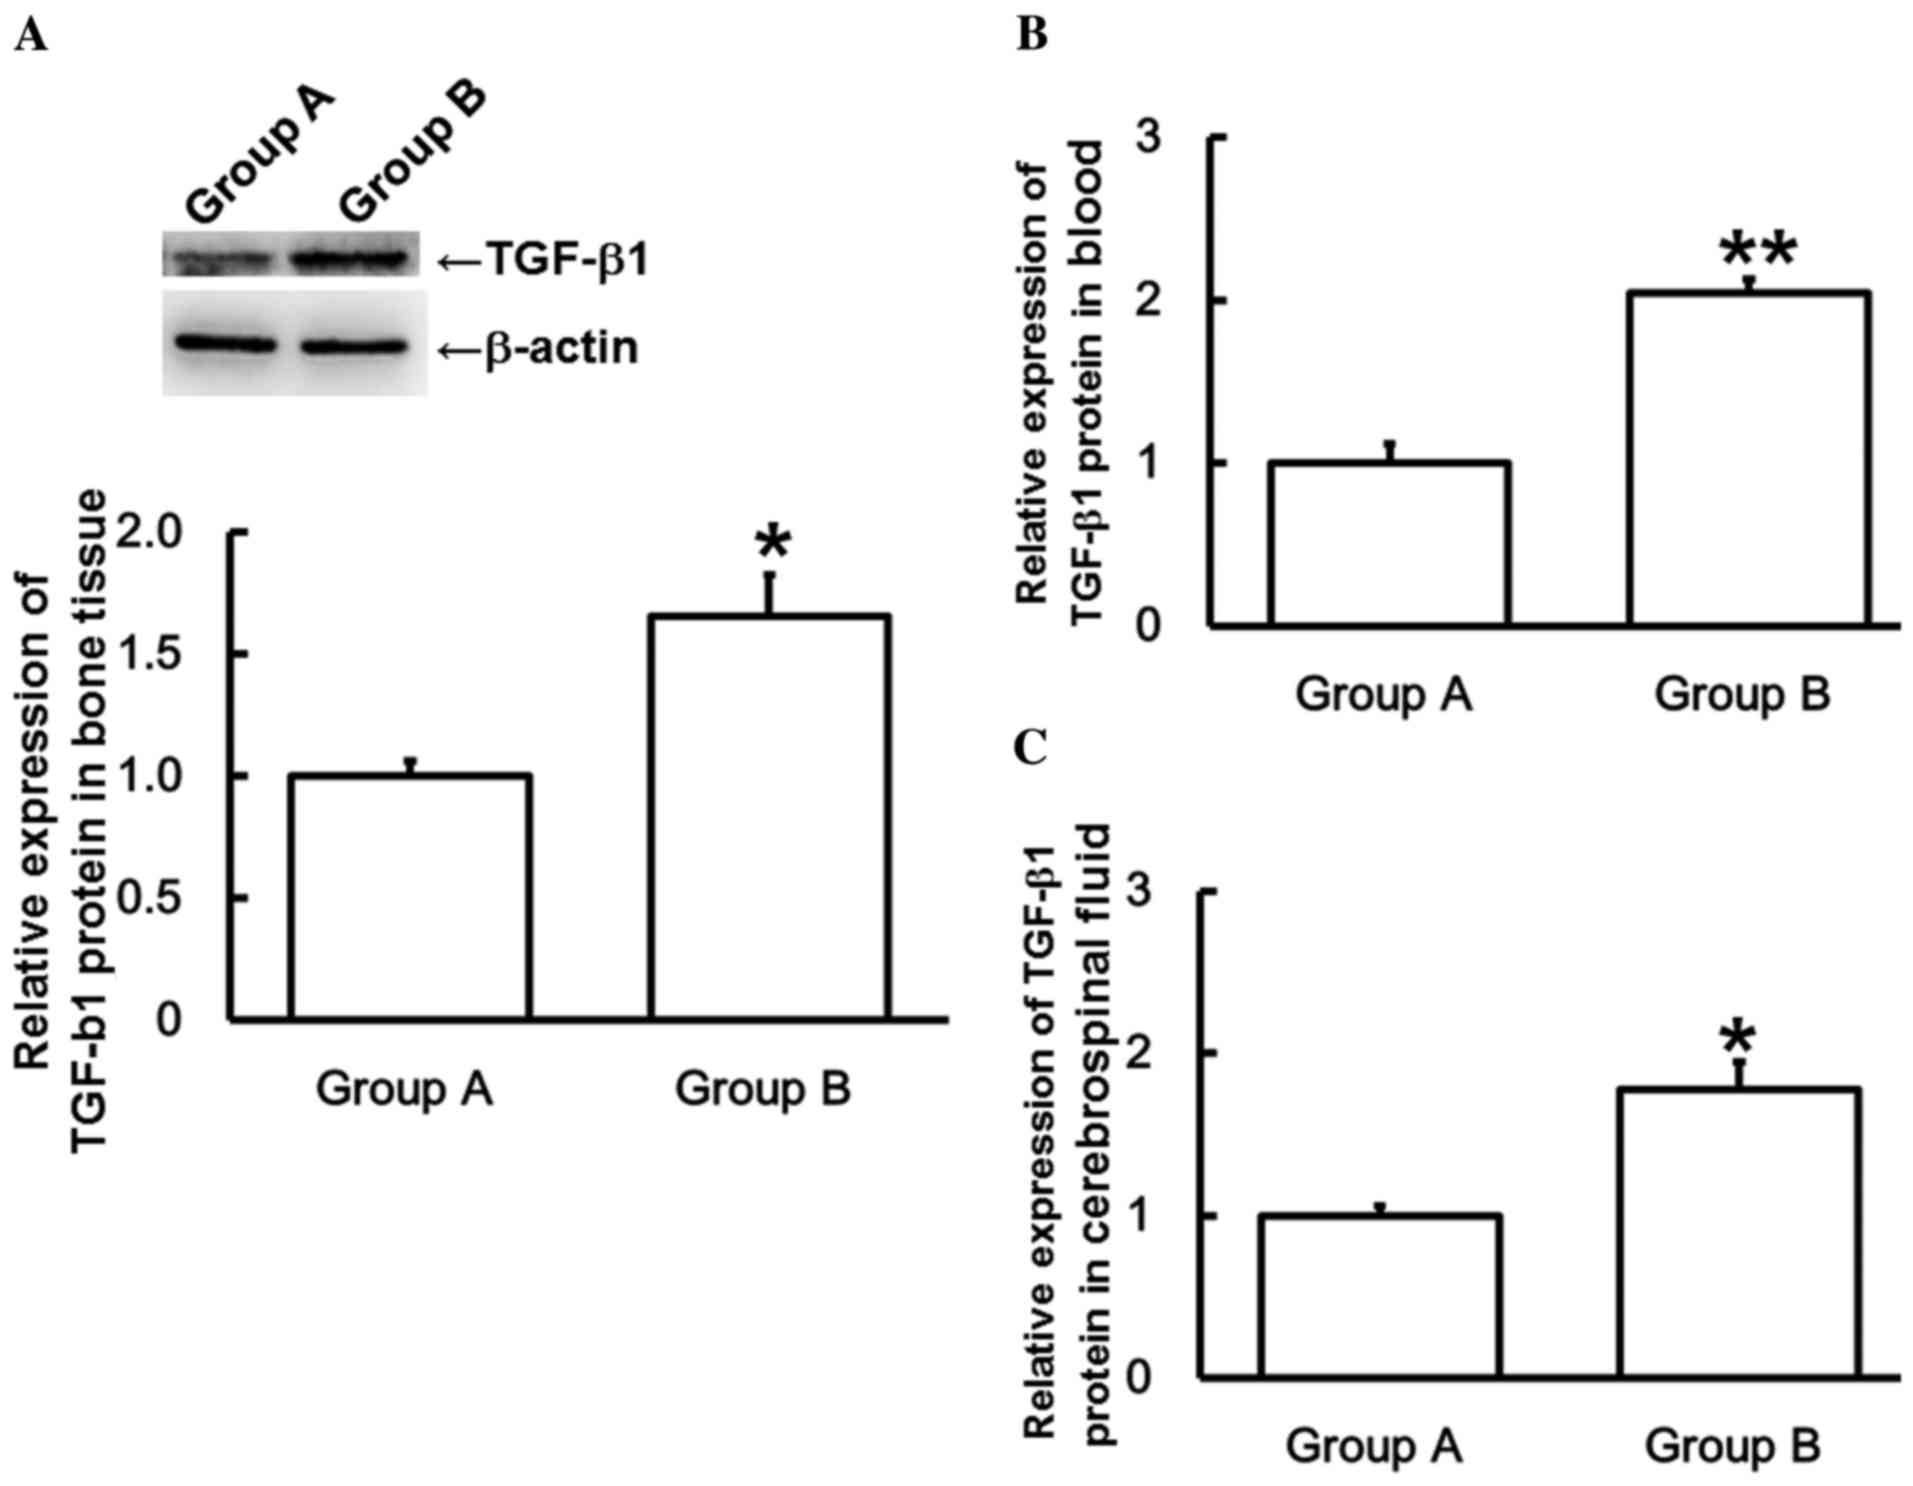 microrna u2011185 regulates spinal cord injuries induced by thoracolumbar spine compression fractures